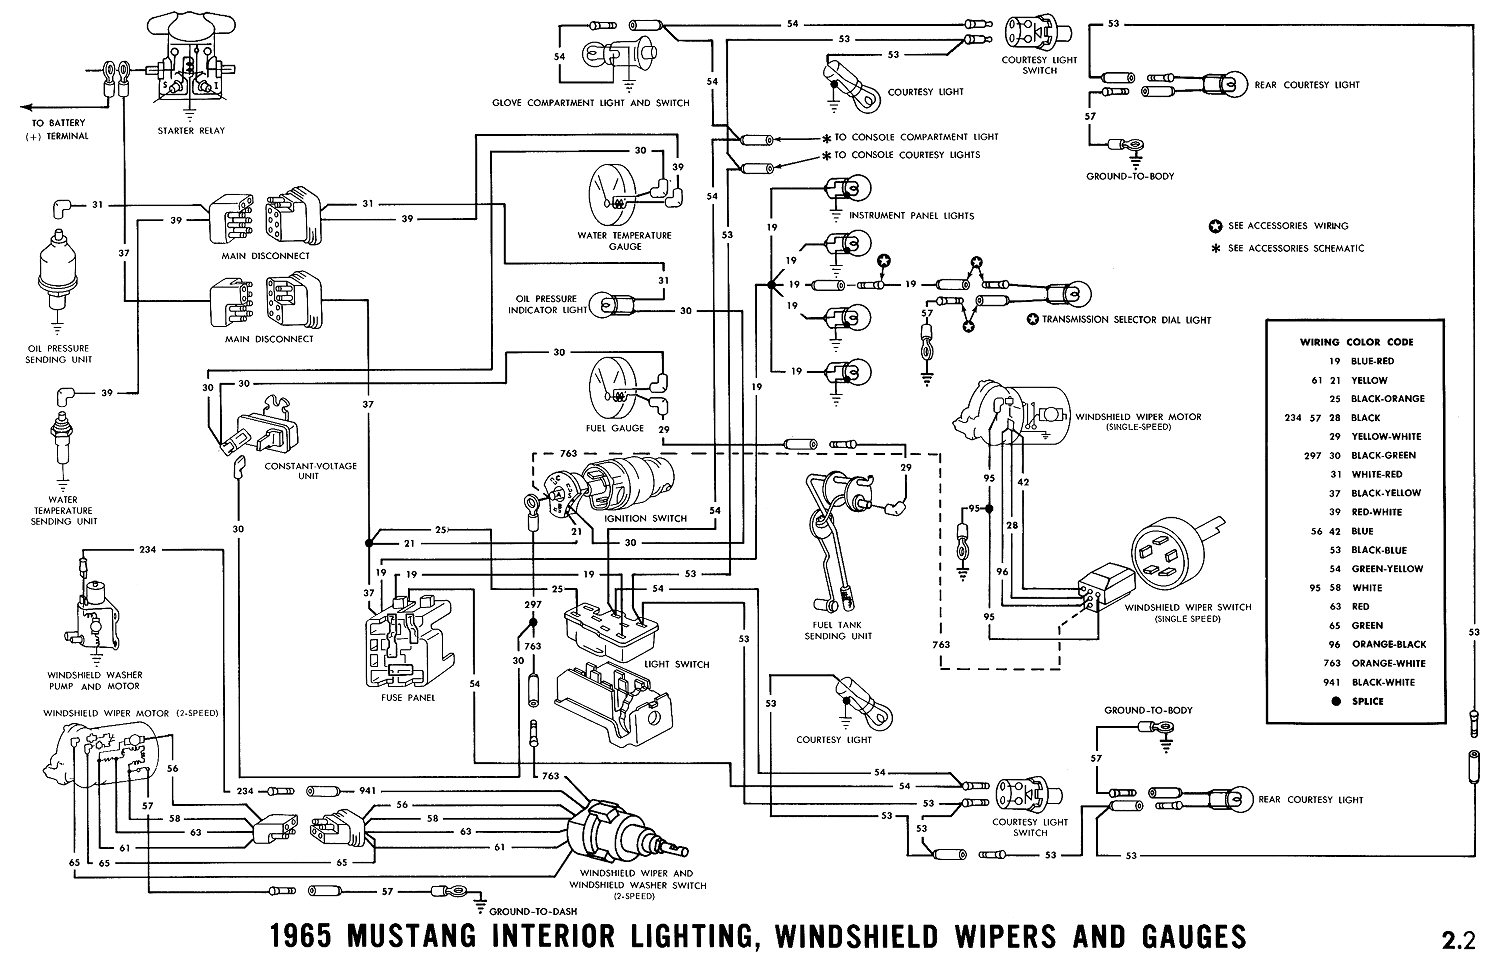 1965 Mustang Wiring Diagrams Average Joe Restoration 5 Pole Ignition Switch Diagram Oil Pressure